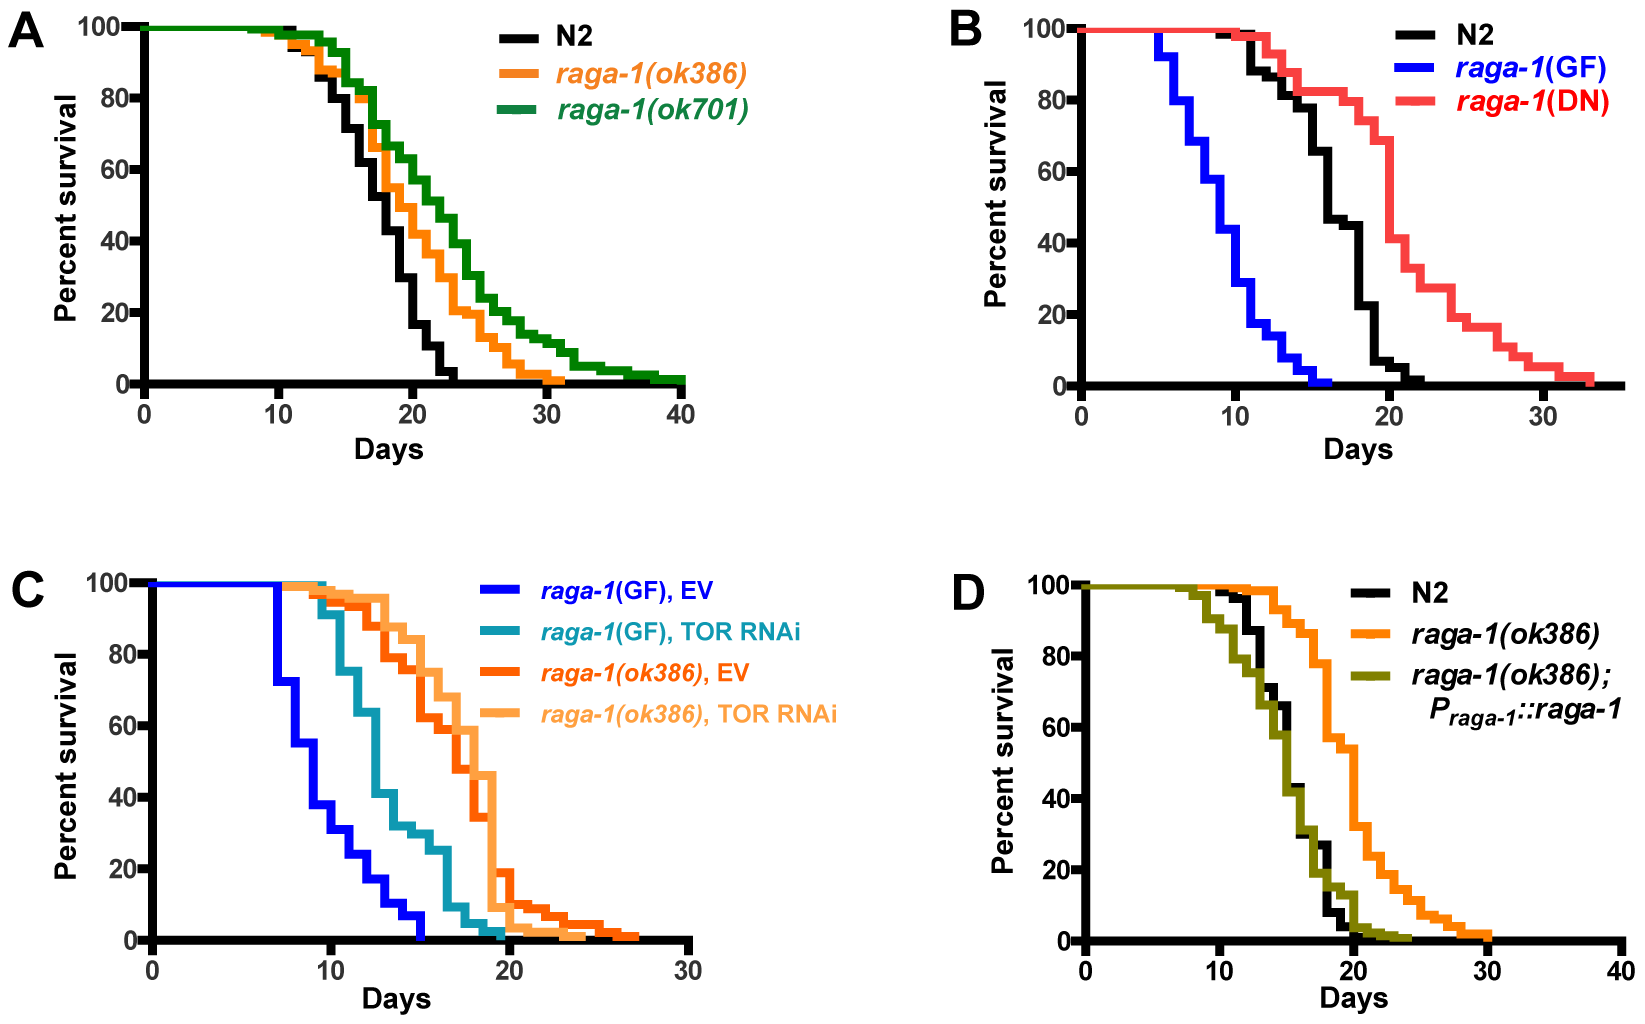 Genetic alteration of <i>raga-1</i> affects lifespan.